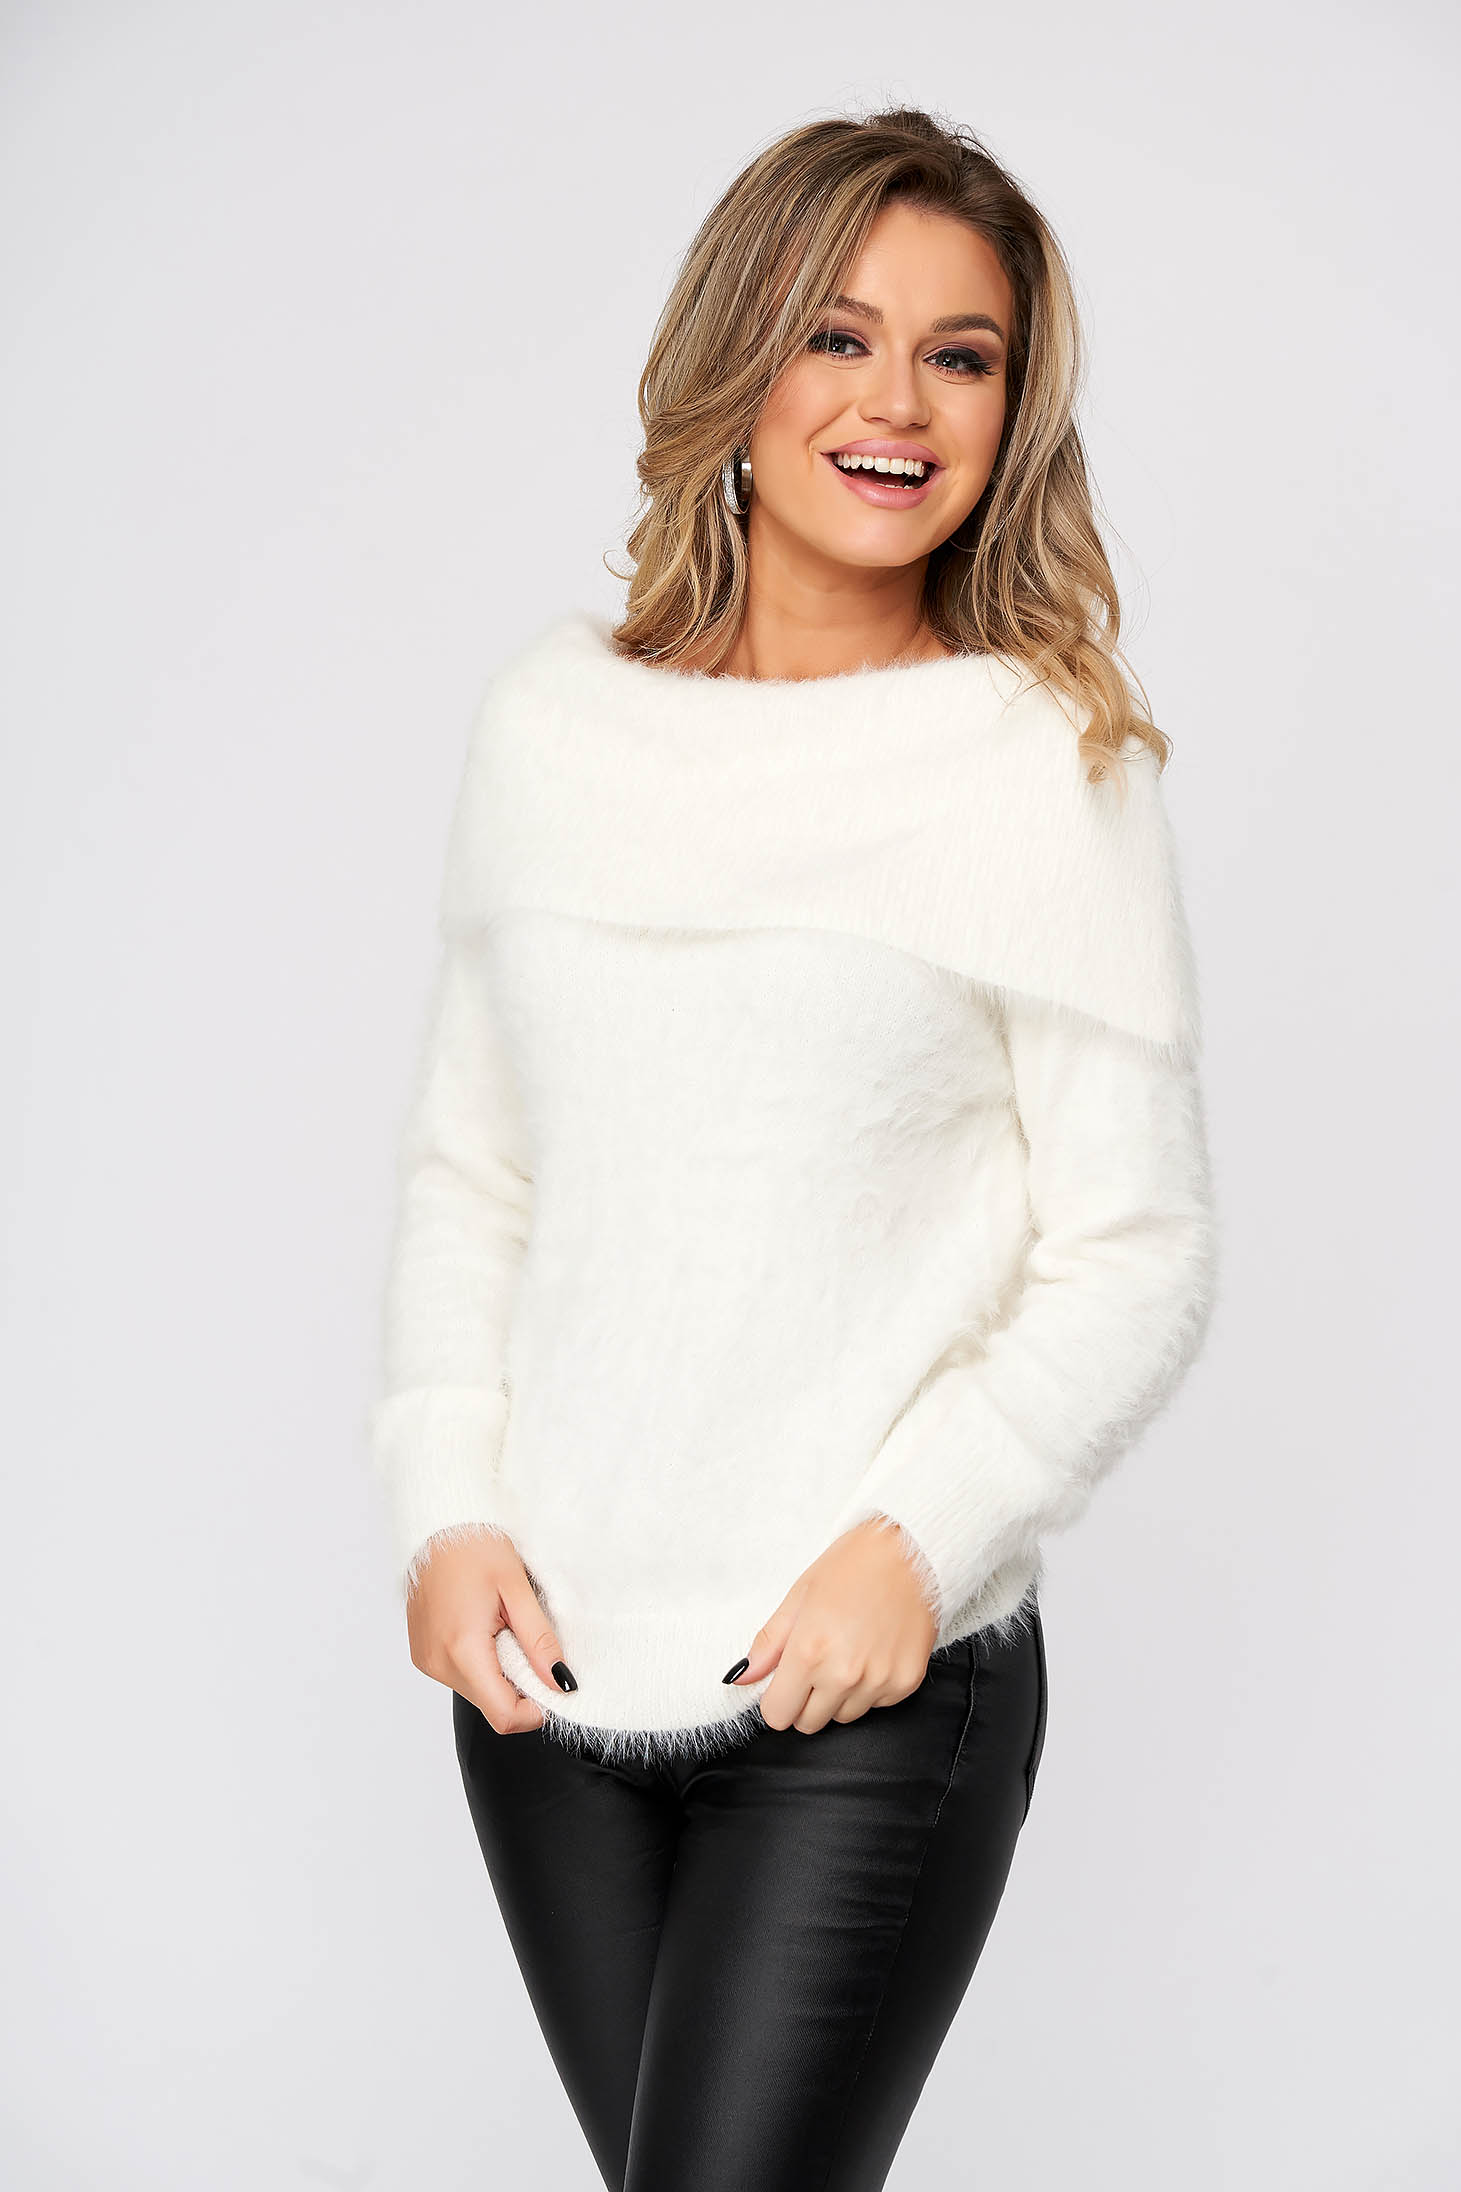 White sweater casual tented from fluffy fabric